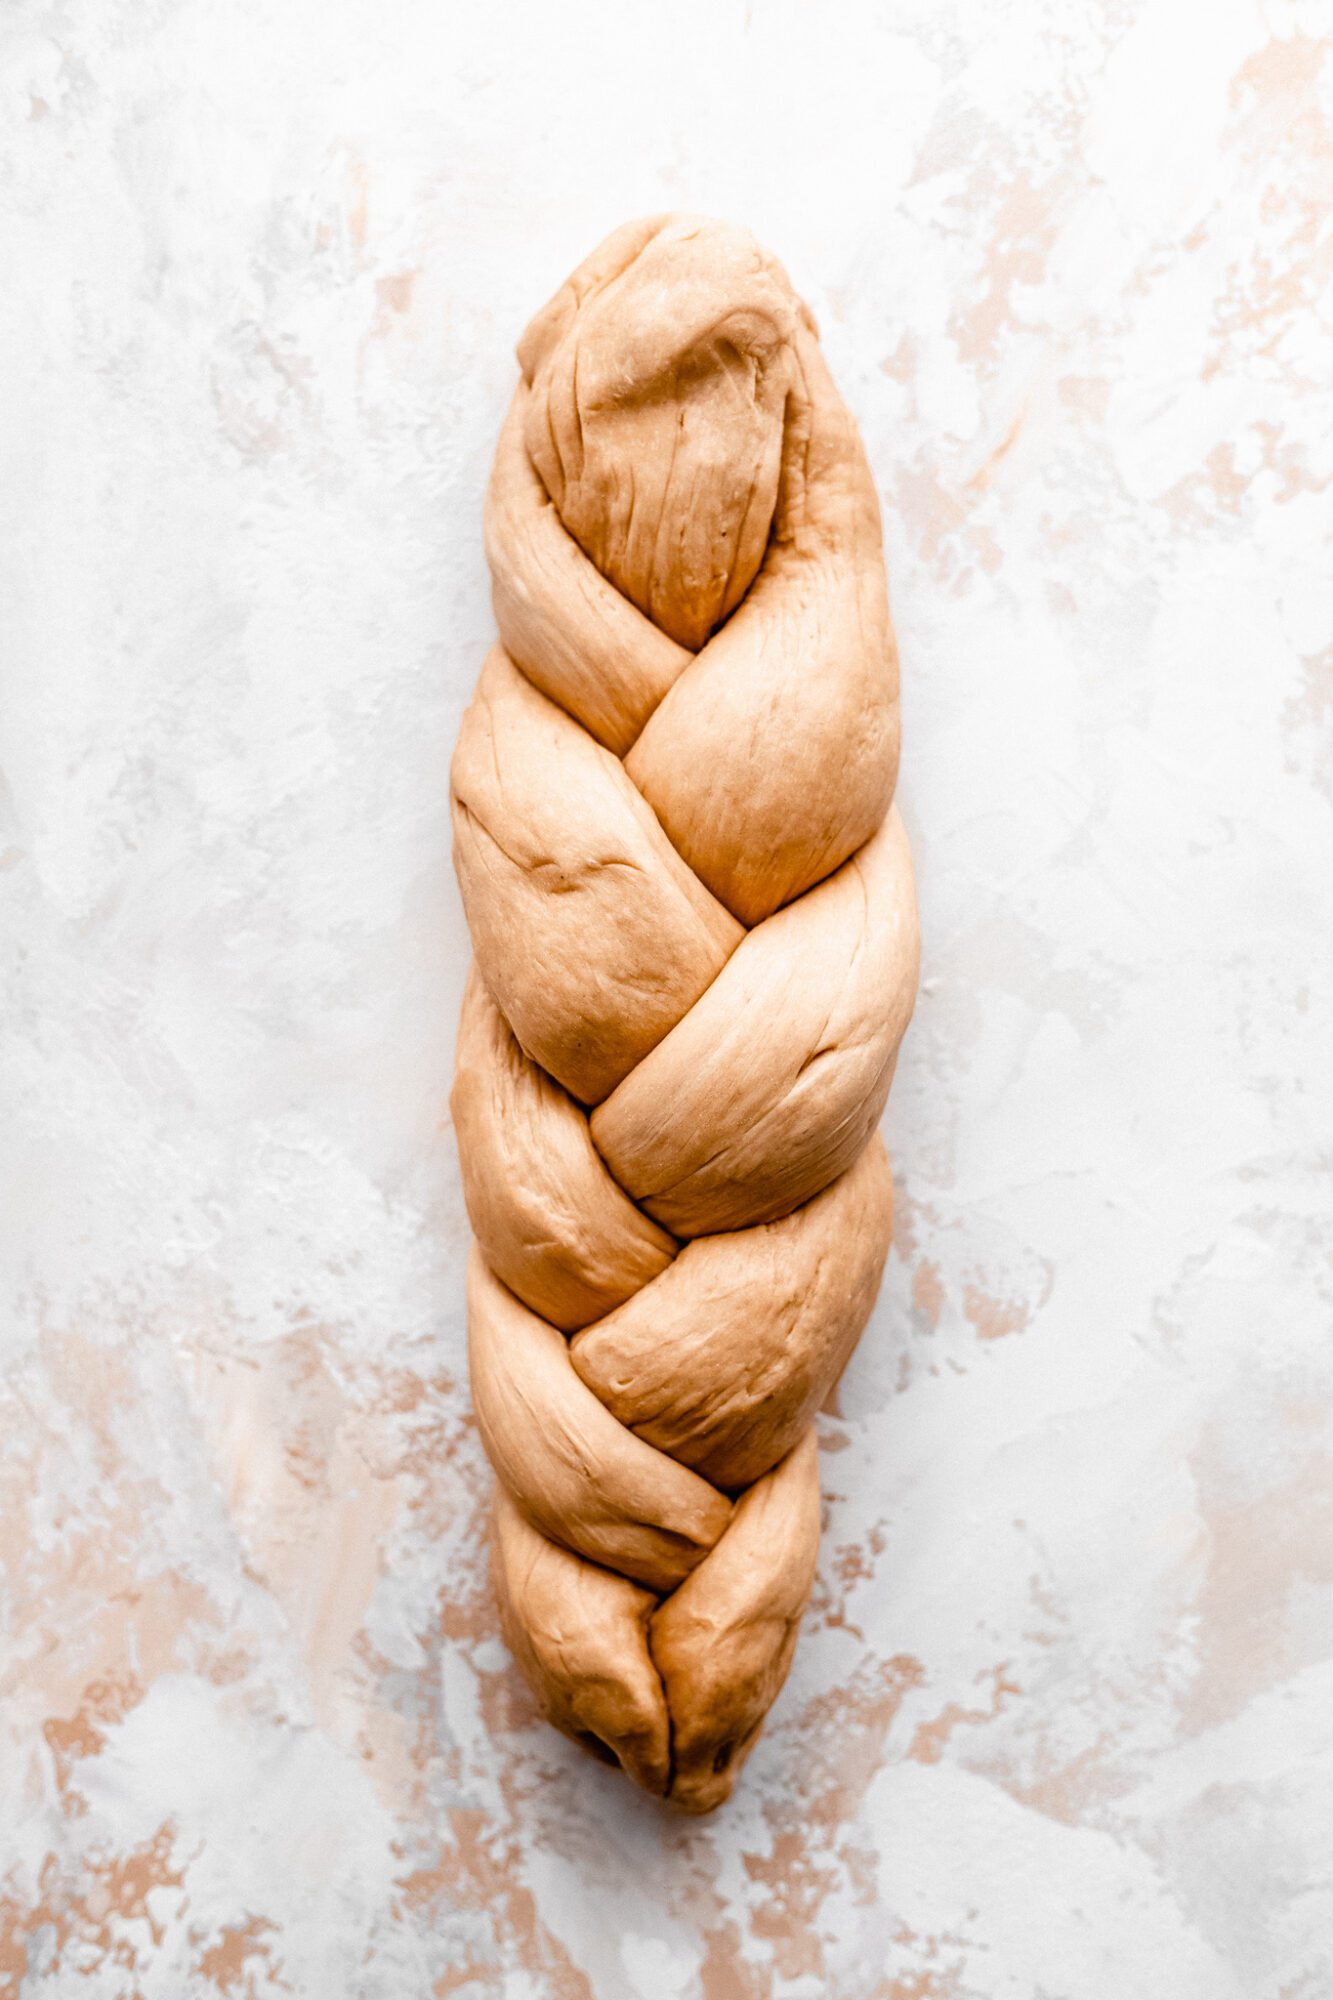 challah dough braided before it bakes